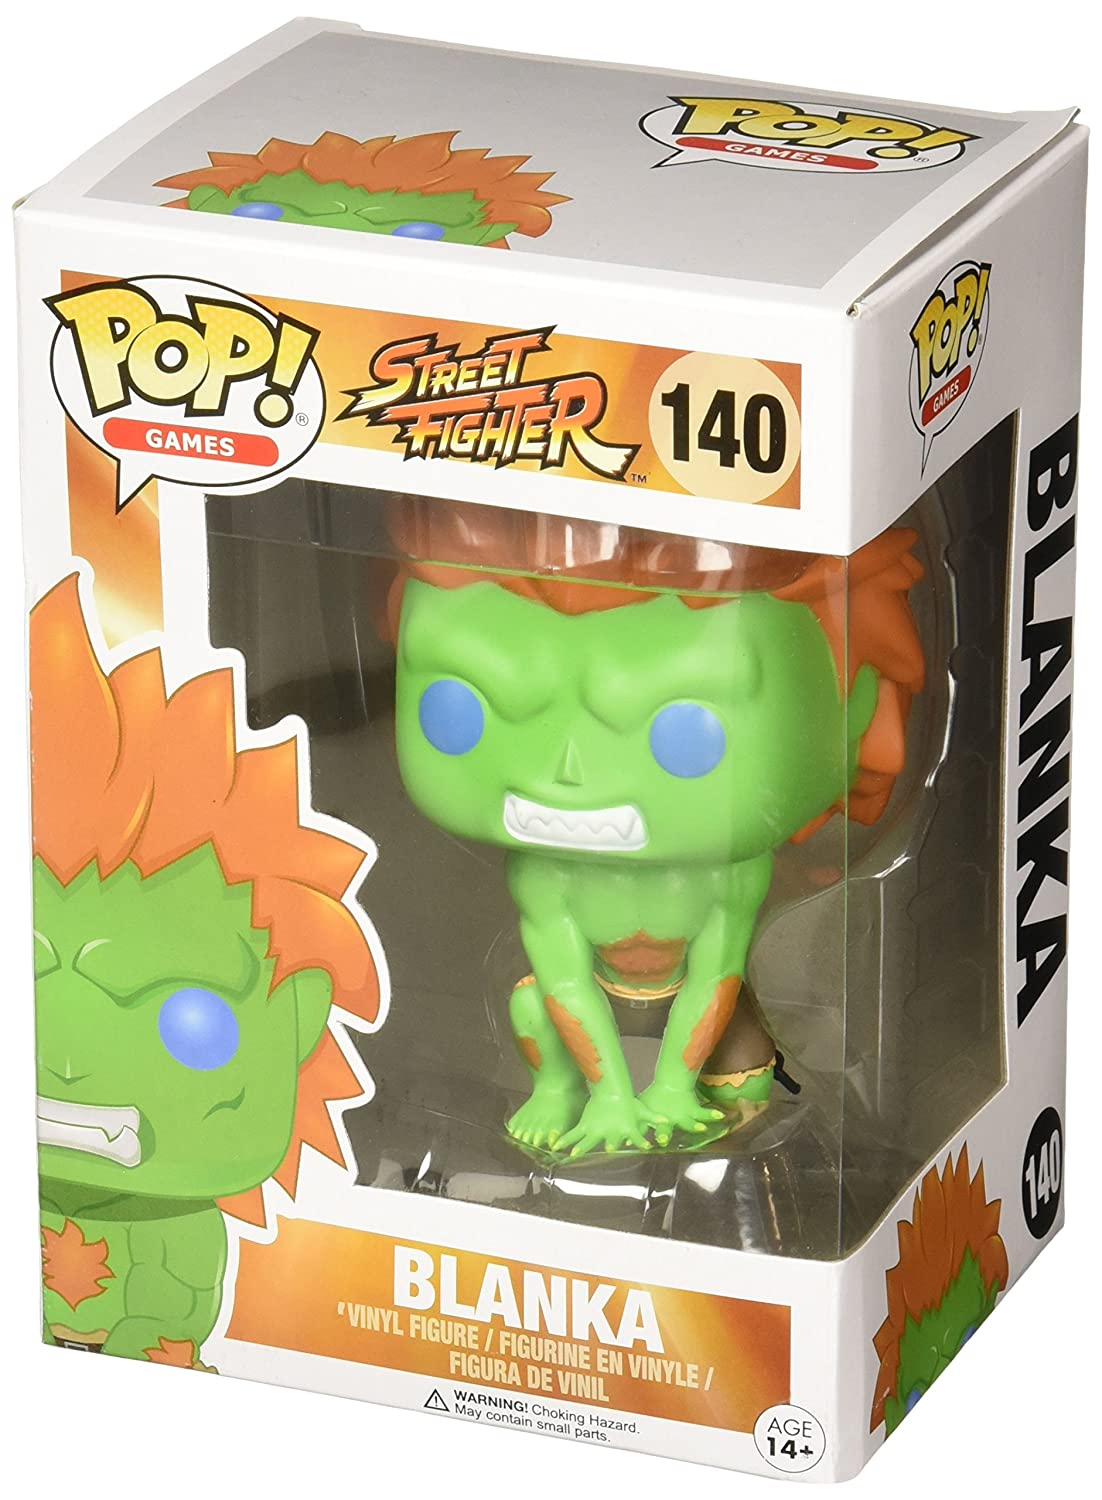 Funko Pop! Street Fighter - Blanka